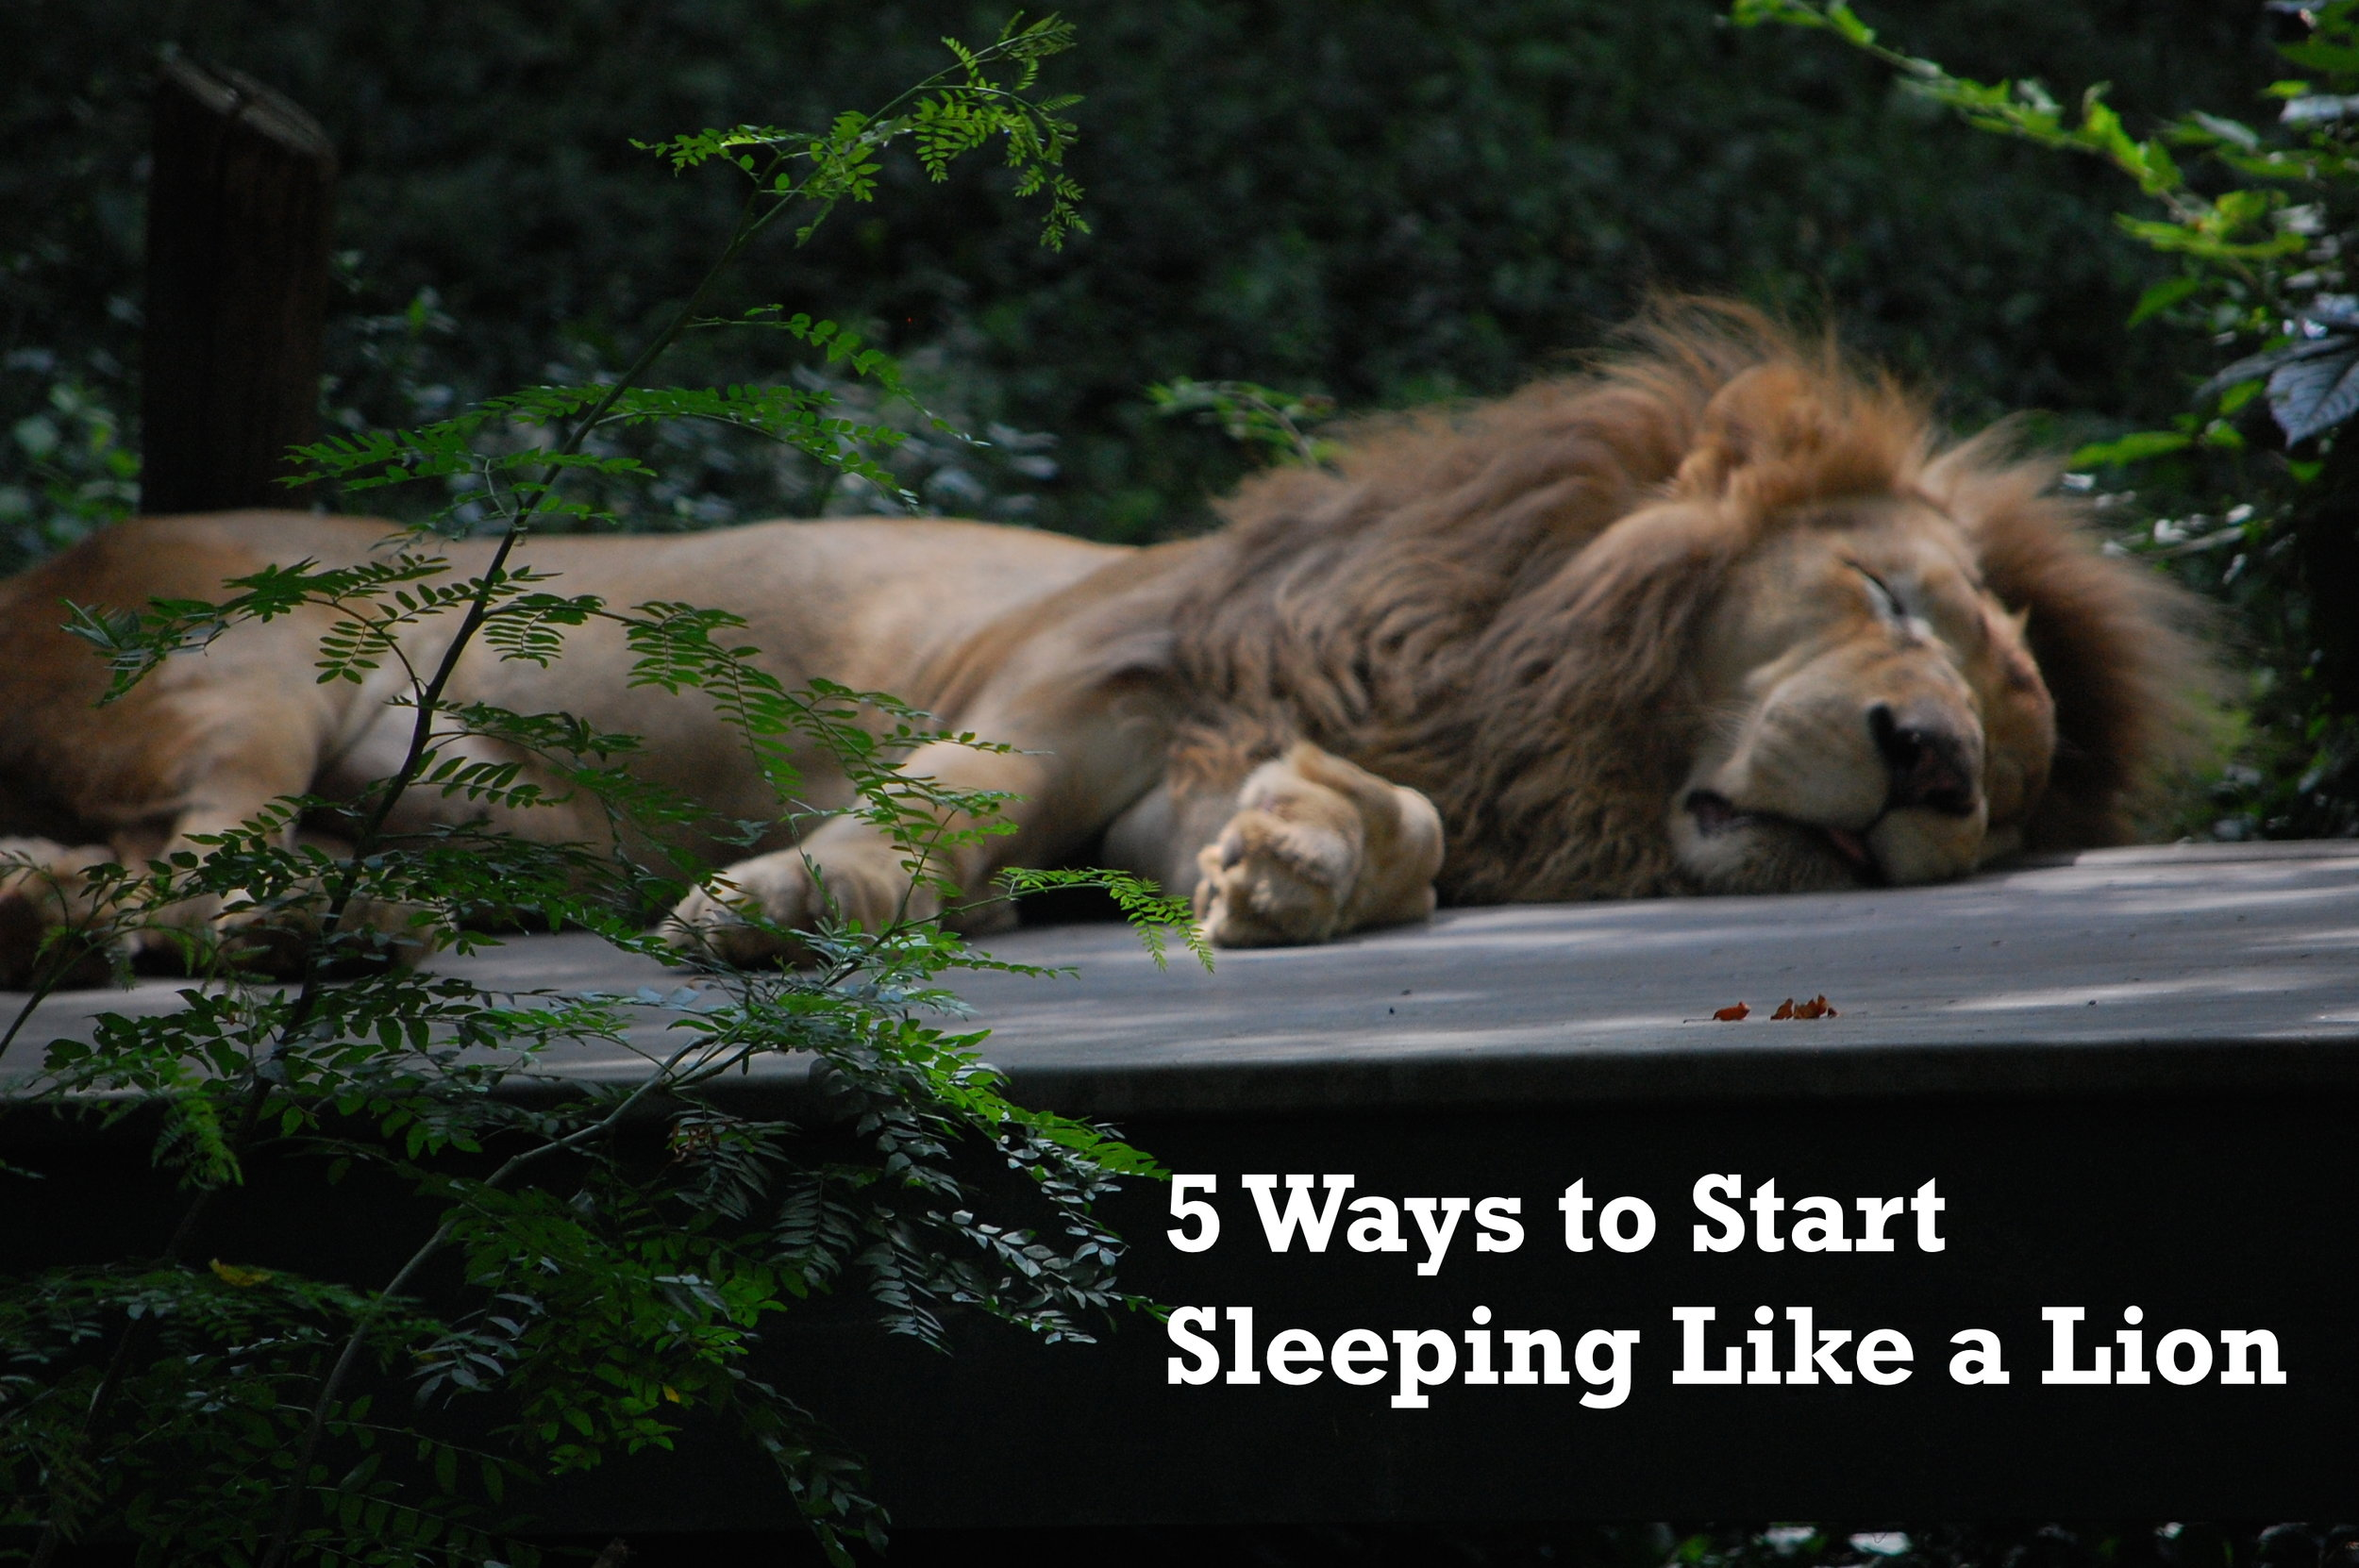 5 Ways to Start Sleeping Like a Lion